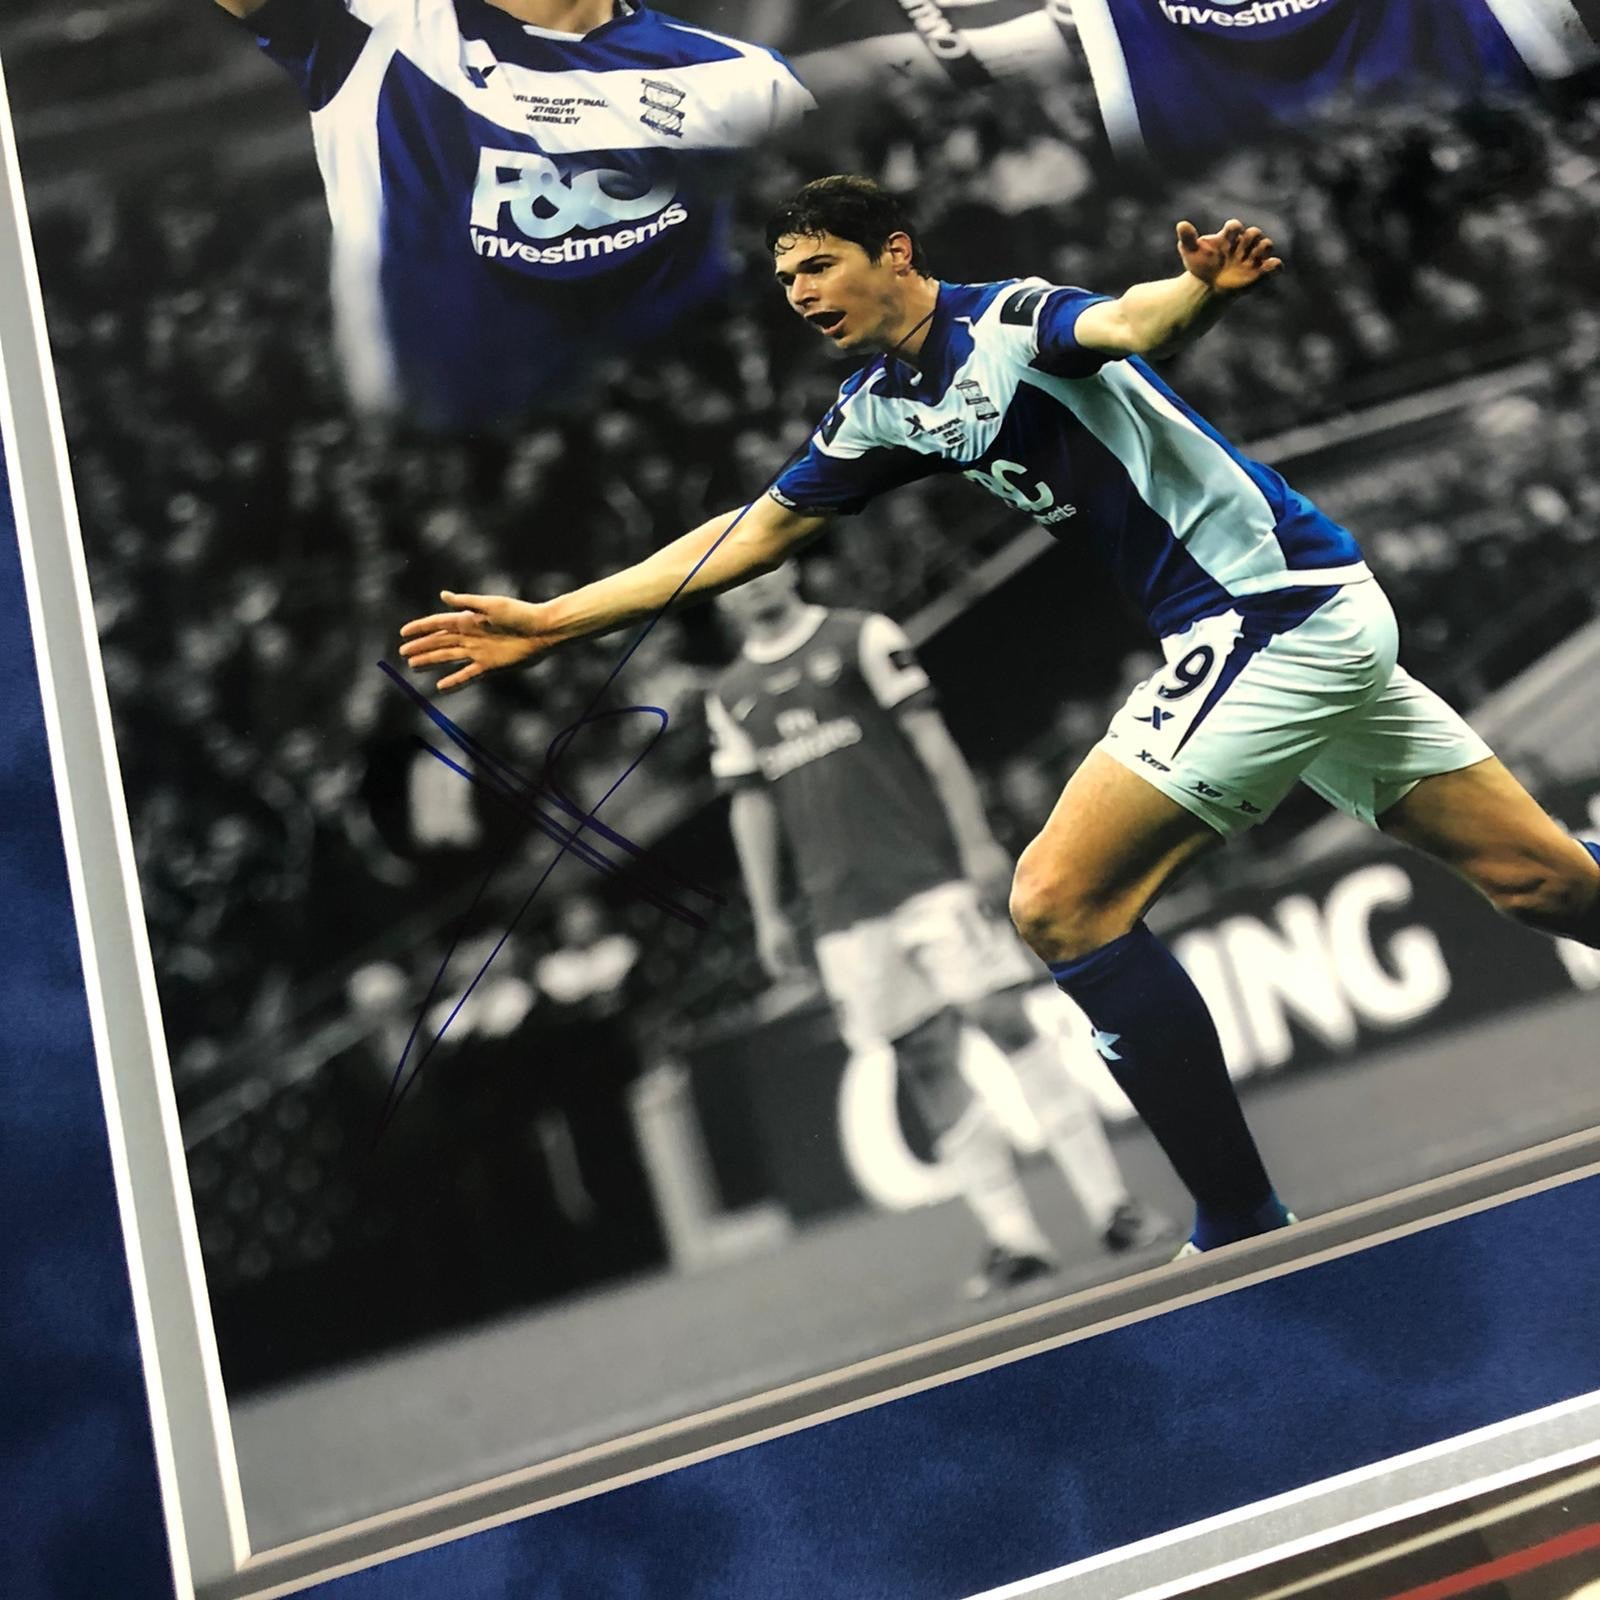 Nikola Zigic 2011 Carling Cup Winner Signed Frame